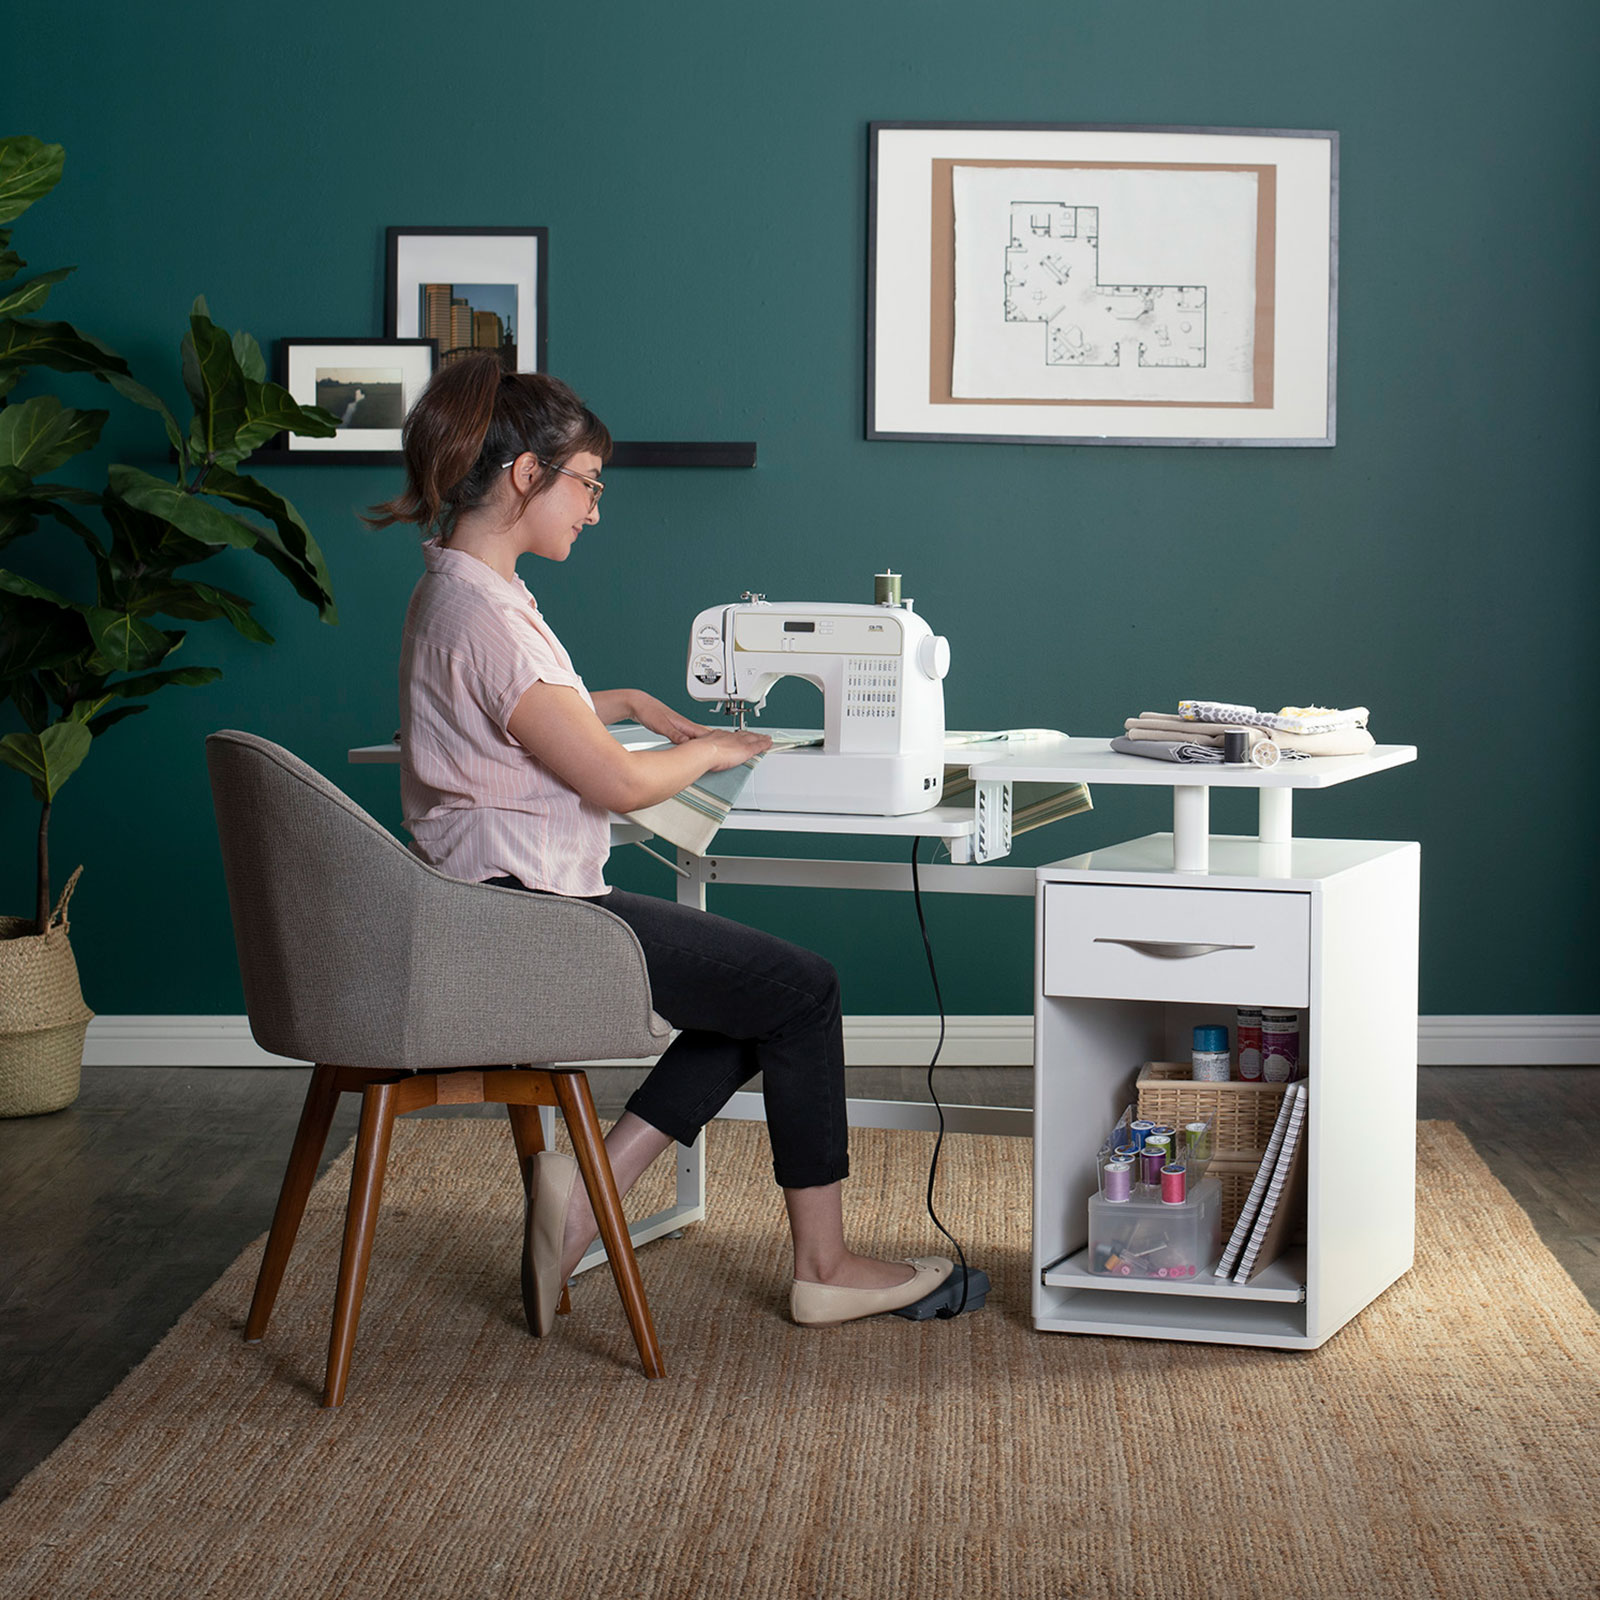 13397-Pro-Line-Sewing-Table-RS1-model1a-ext